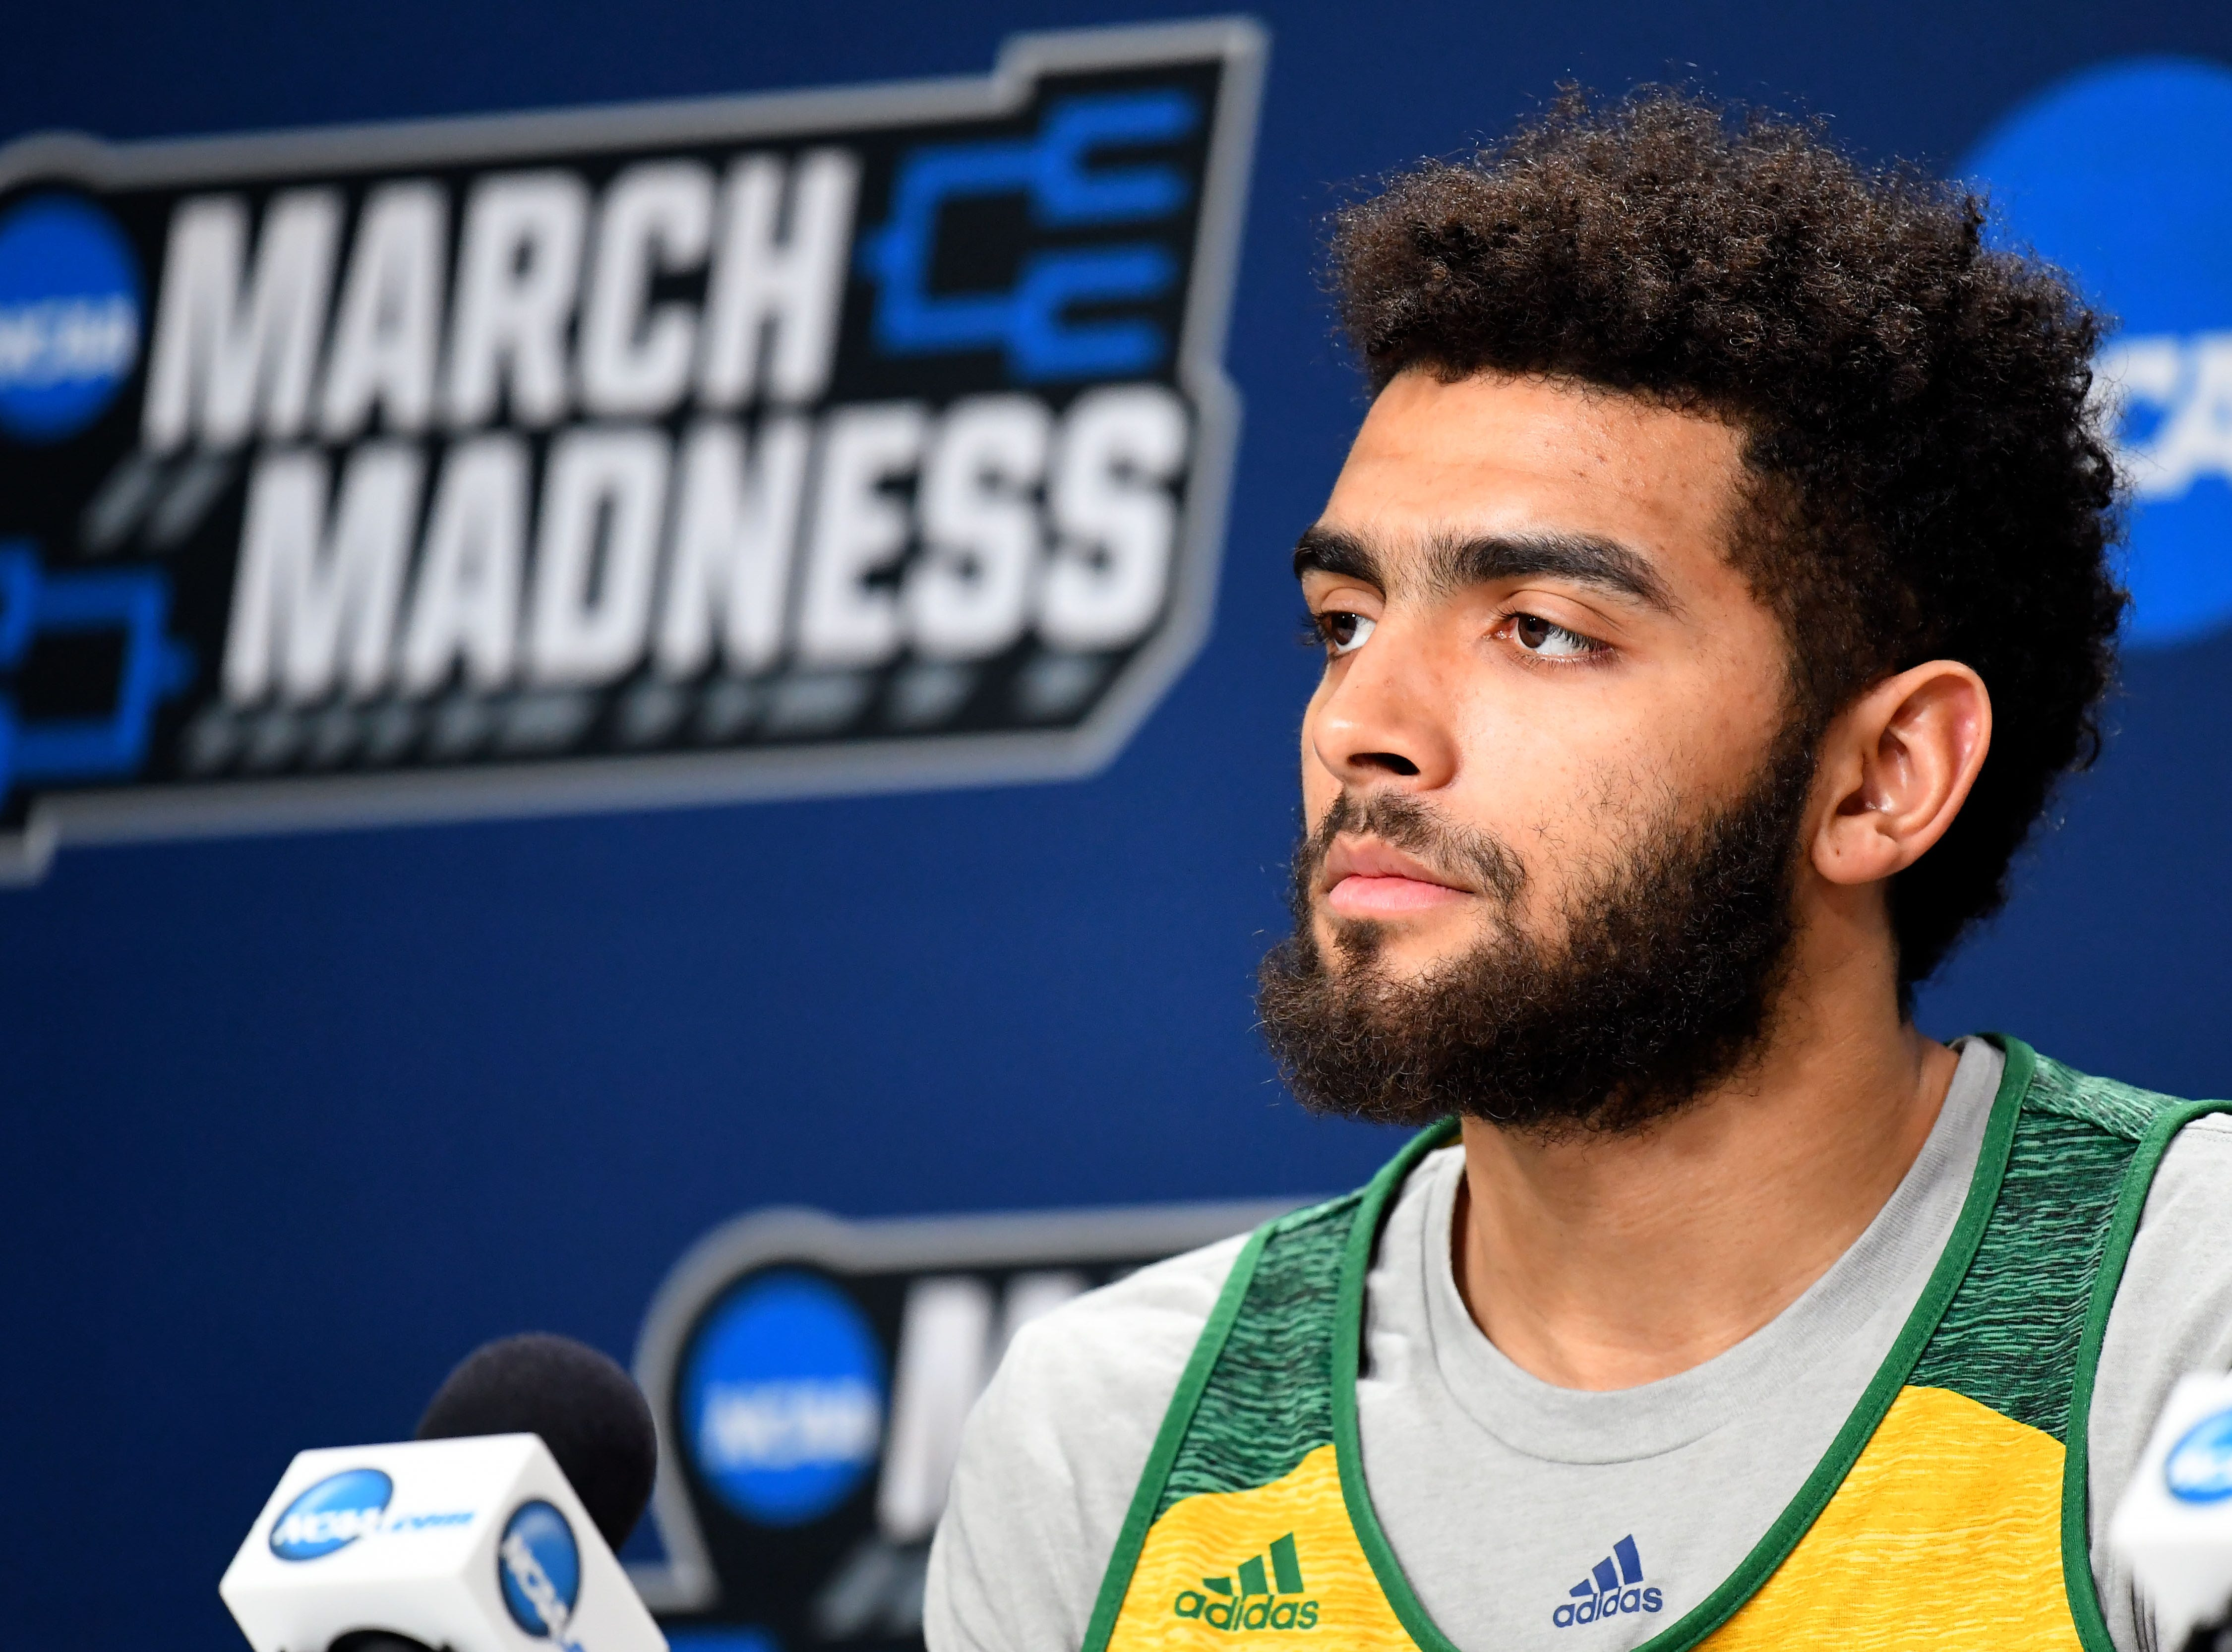 Mar 20, 2019; Hartford, CT, USA; Vermont Catamounts forward Anthony Lamb (3) speaks with the media before a practice in the first round of the 2019 NCAA Tournament at XL Center. Mandatory Credit: Robert Deutsch-USA TODAY Sports